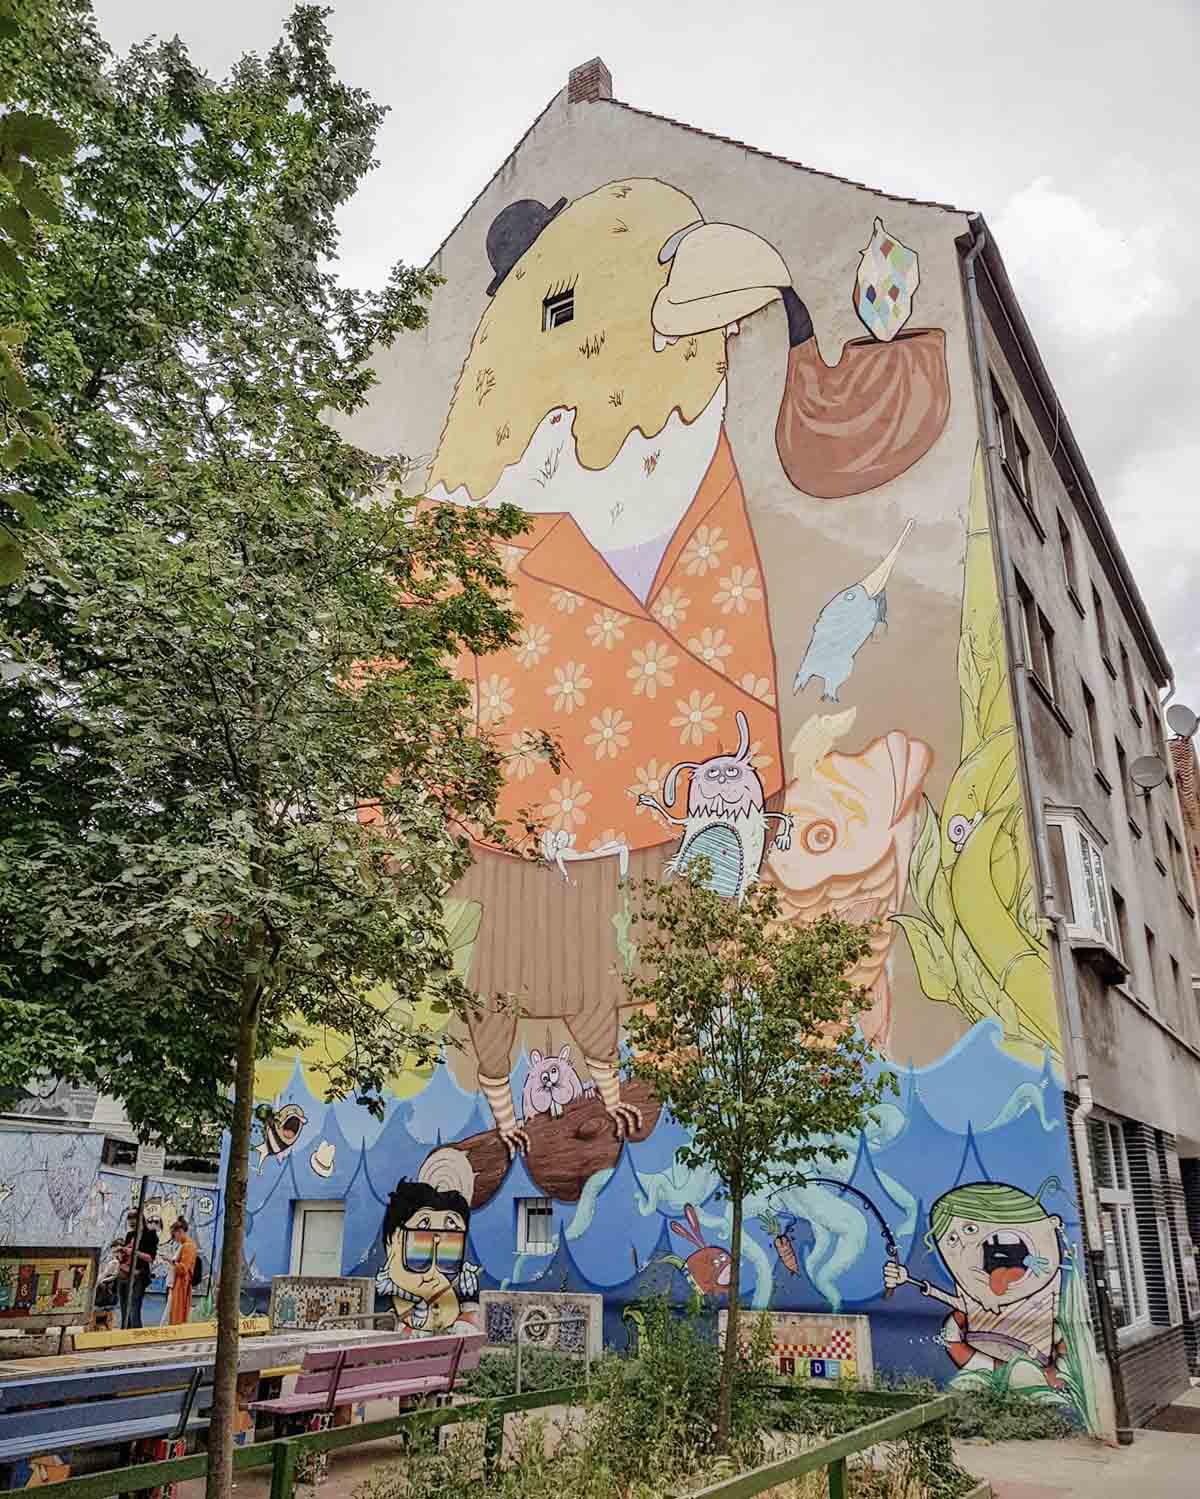 Street art Linden, Hannover - Map of Joy